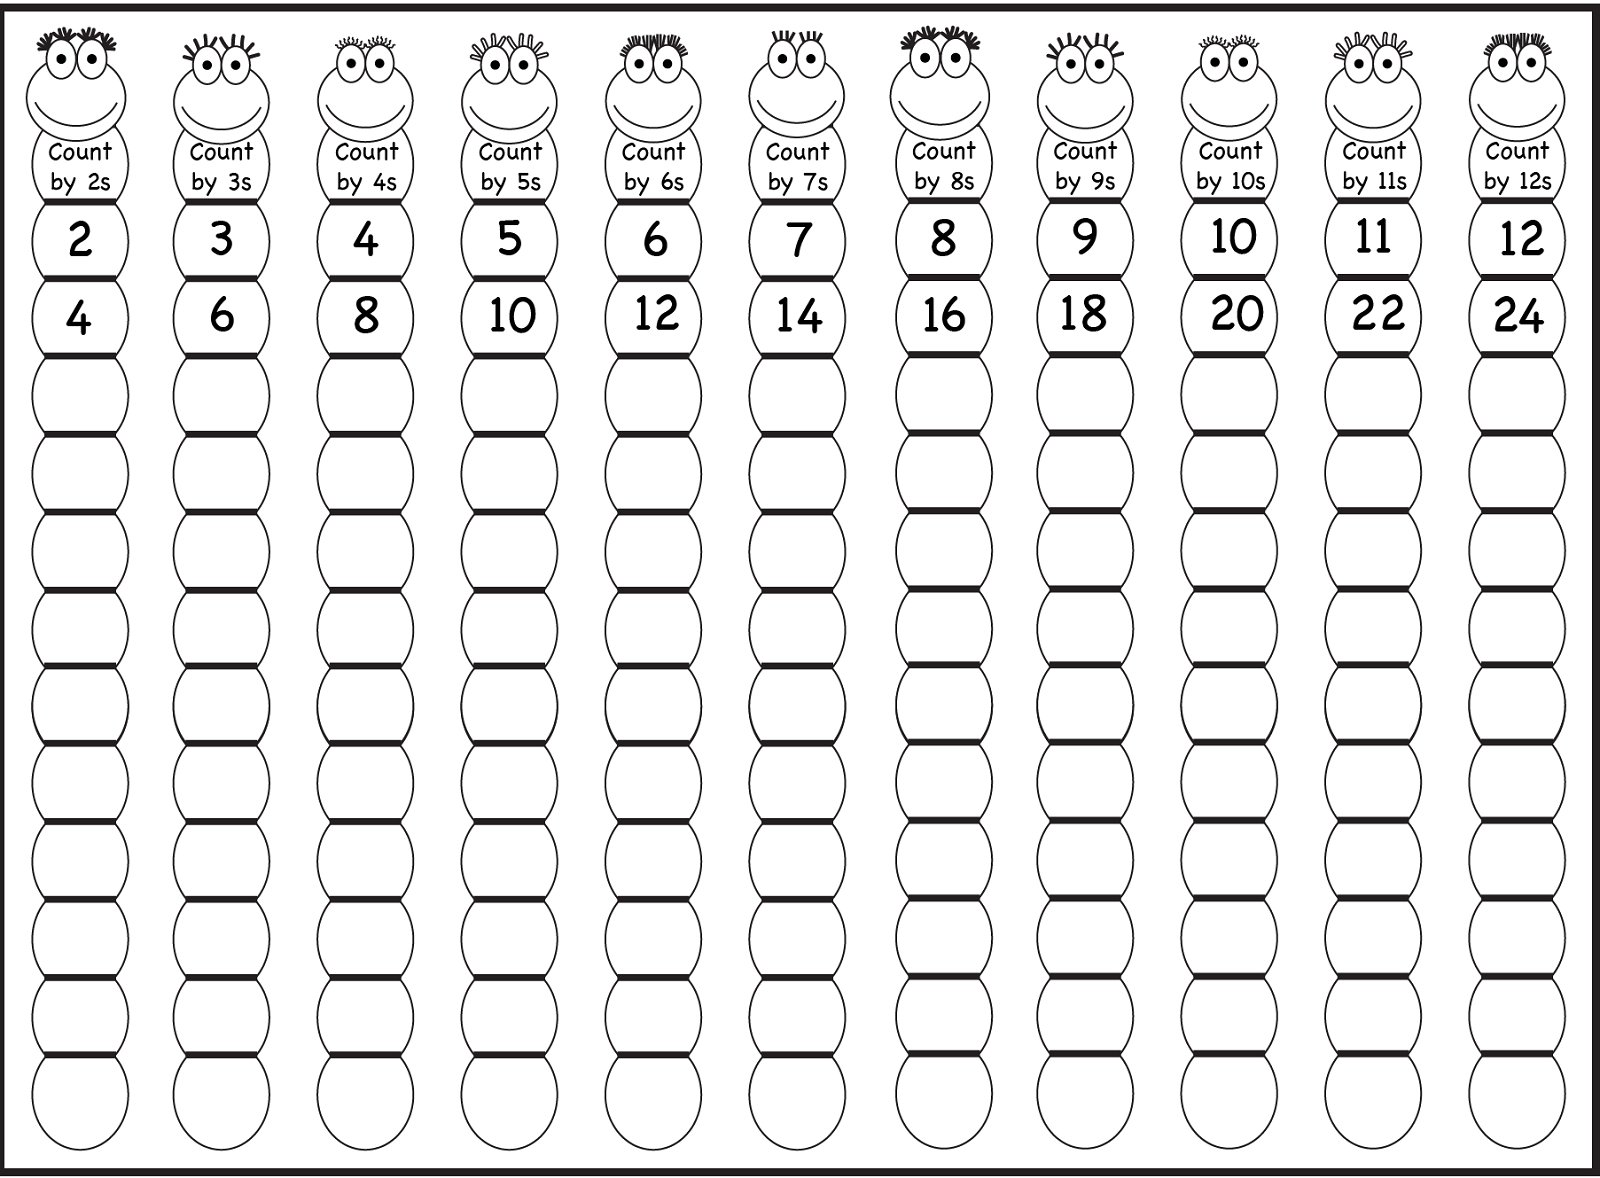 Skip Count By 5 Worksheet Kiddo Shelter Math Counting